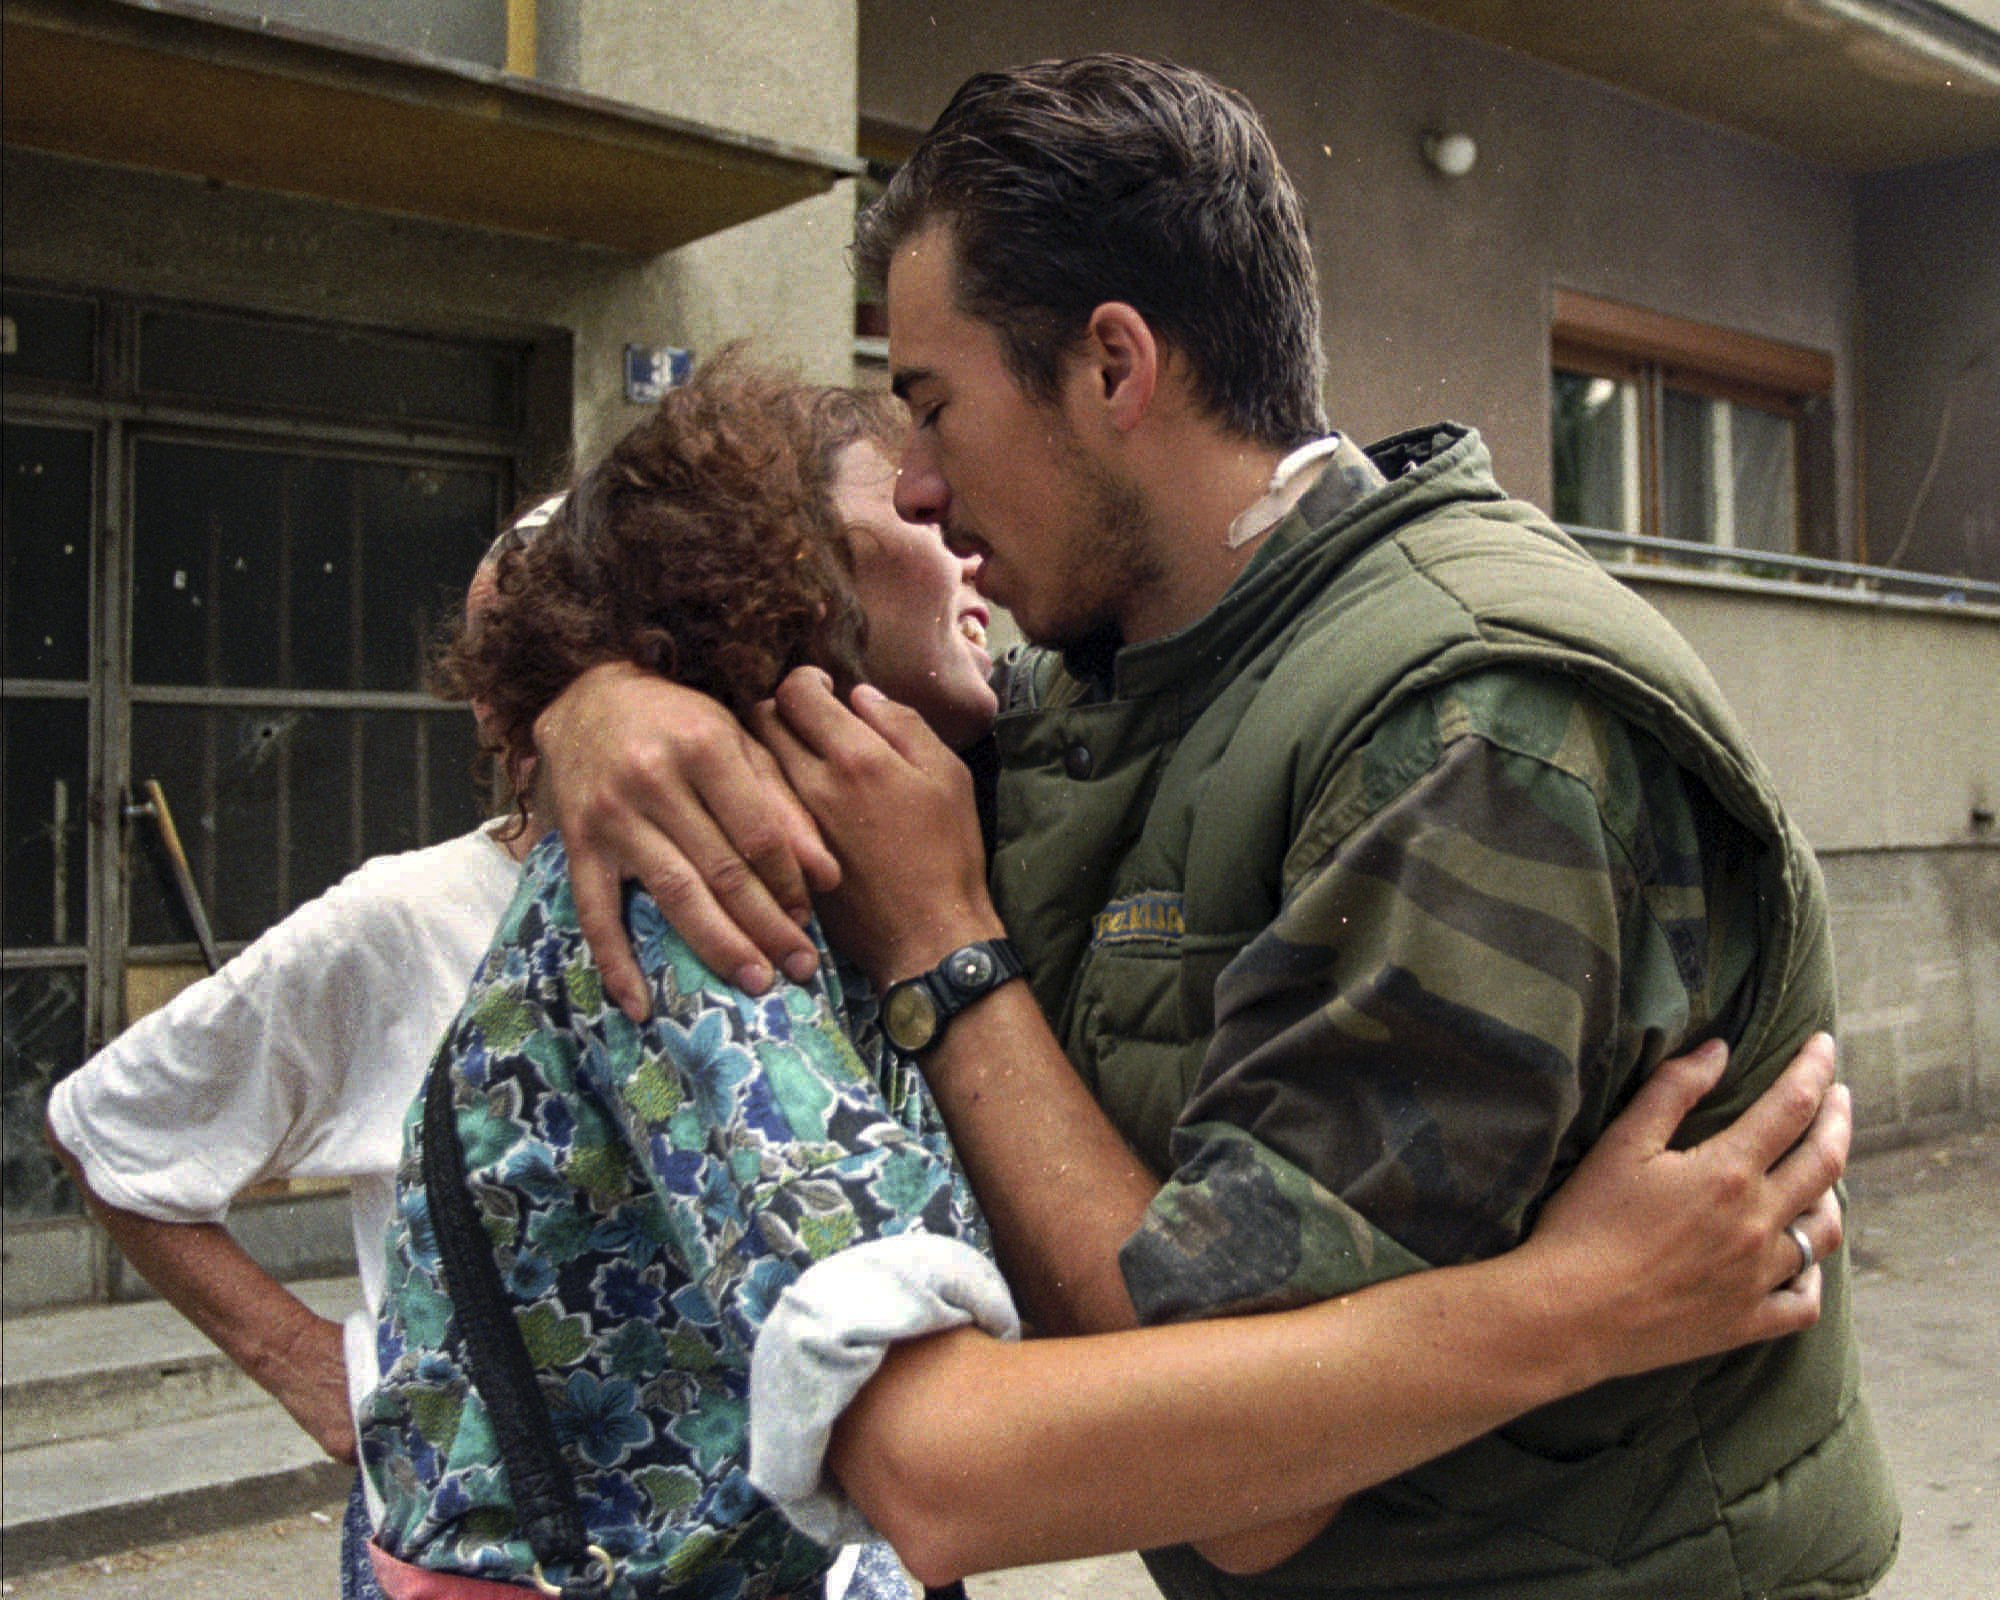 FILE- In this July 19, 1995, file picture, Ahmed Ustic, 19, one of several thousand Bosnian men who took part in the death march from Srebrenica to Tuzla, kisses a friend in Tuzla.  Survivors of the genocide in the eastern Bosnian town of Srebrenica, mainly women, will on Saturday July 11, 2020, commemorate the 25th anniversary of the slaughter of their fathers and brothers, husbands and sons. The slaughter was the only atrocity of the brutal war that has been confirmed an act of genocide.(AP Photo/Darko Bandic, File)